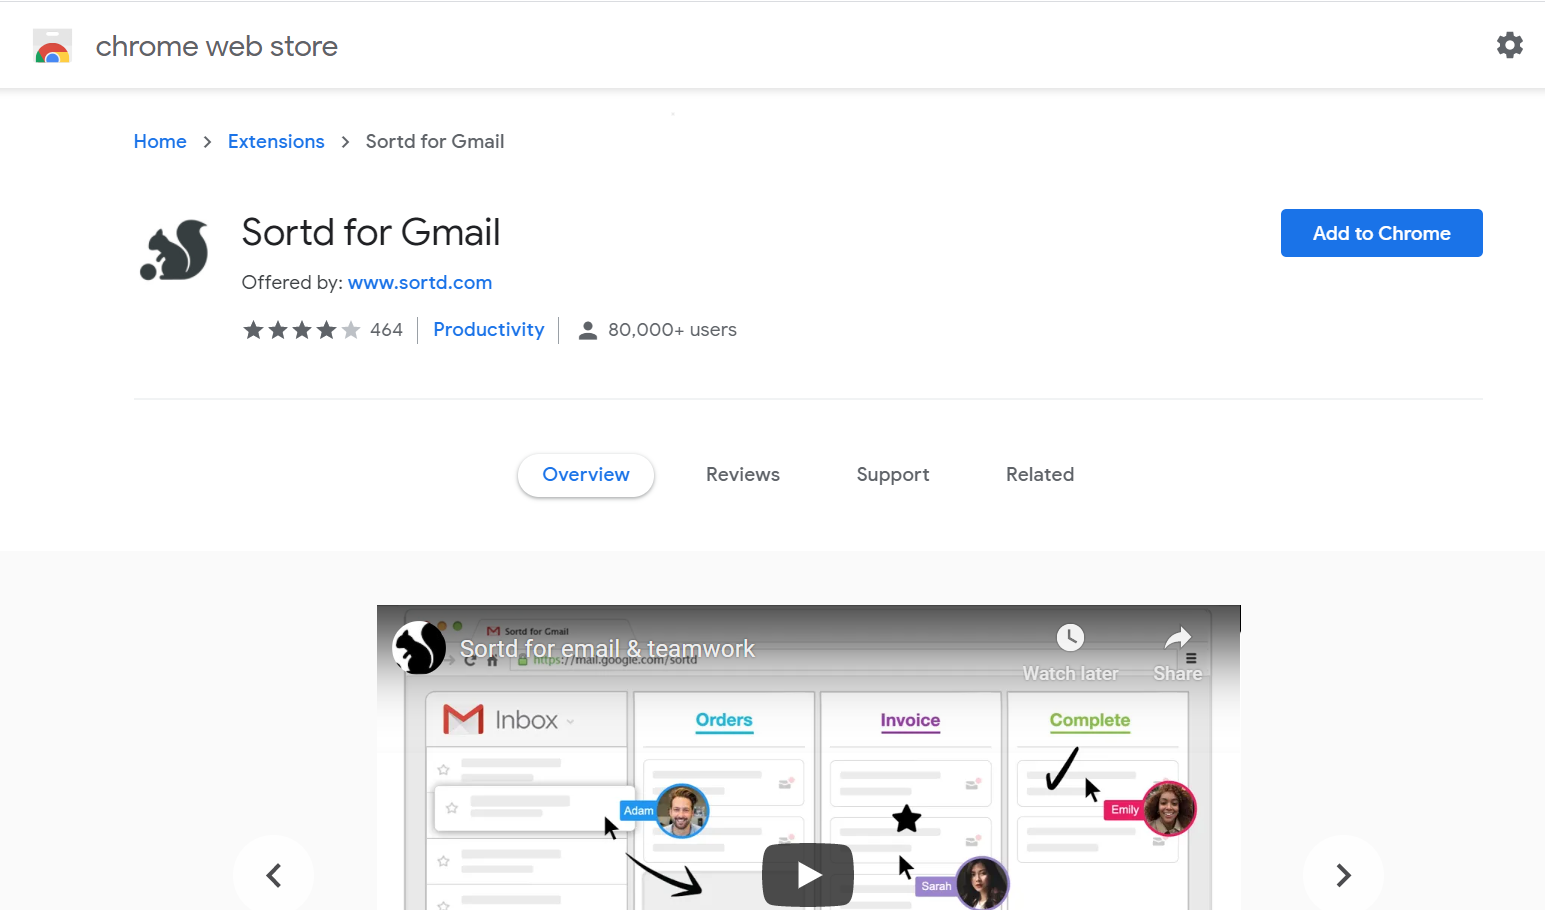 Sortd for Gmail